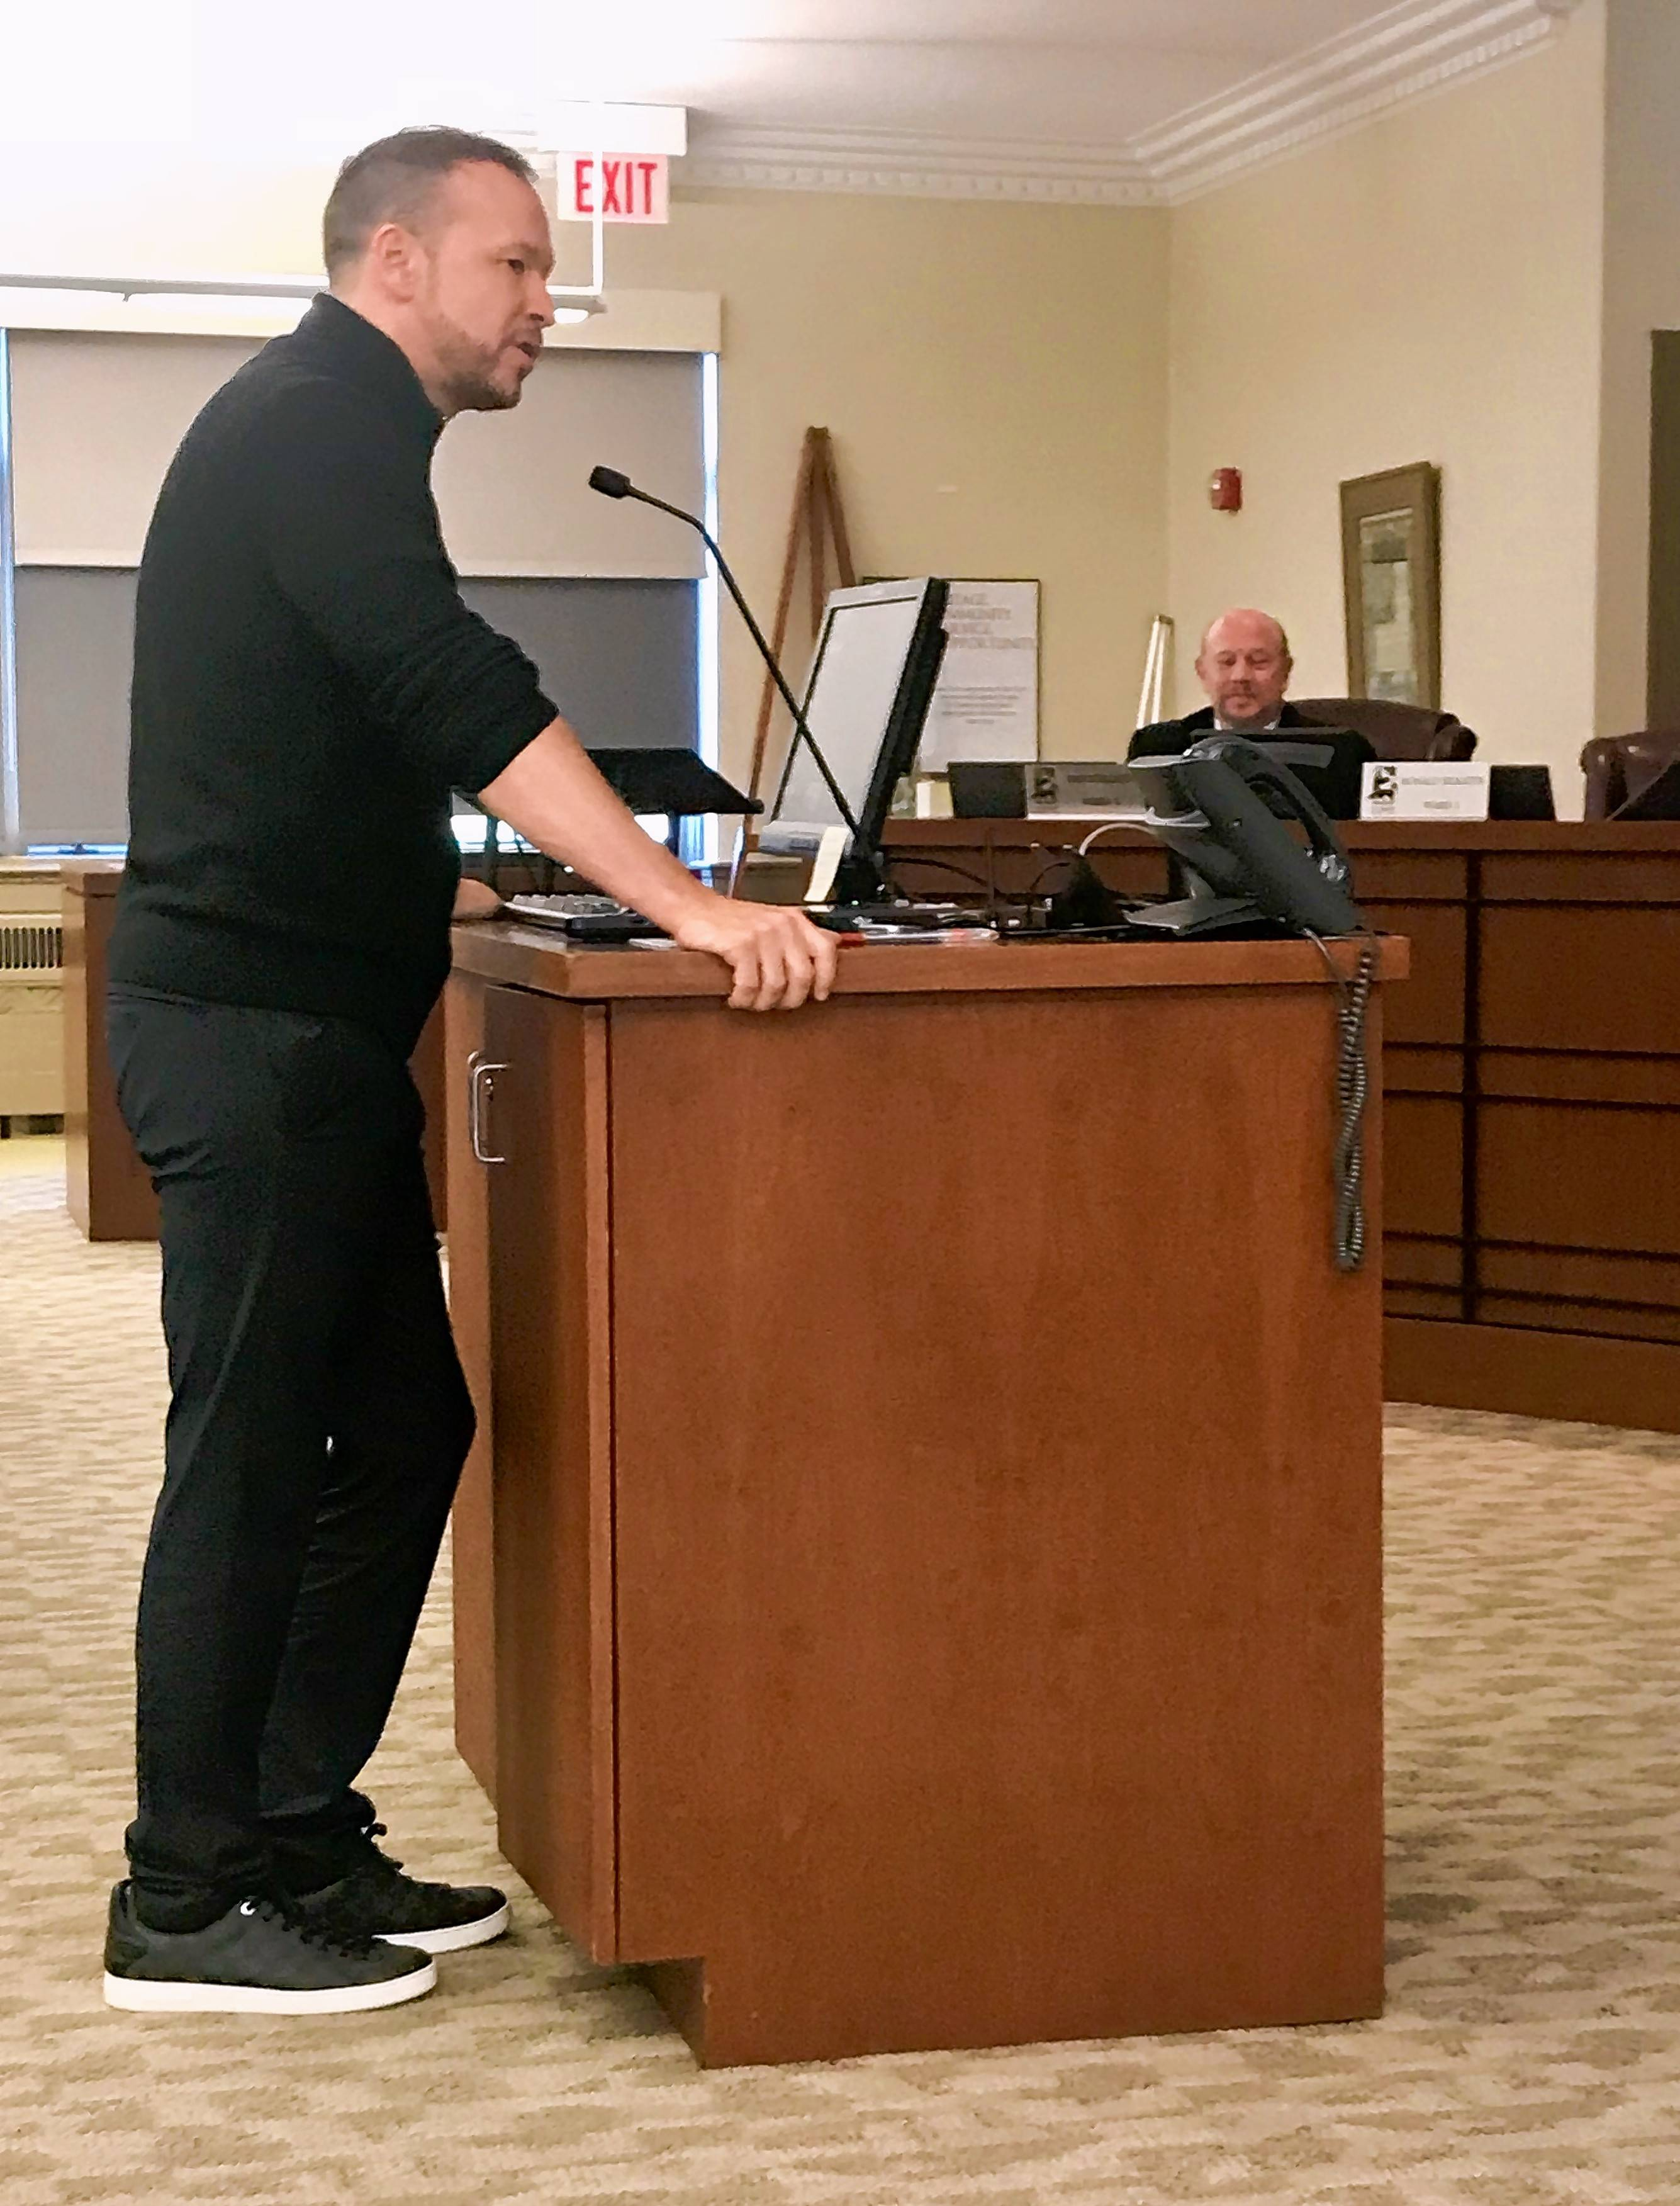 Actor Donnie Wahlberg addresses the St. Charles City Council last year about opening a Wahlburgers restaurant on the city's west side. The restaurant's groundbreaking is Friday.